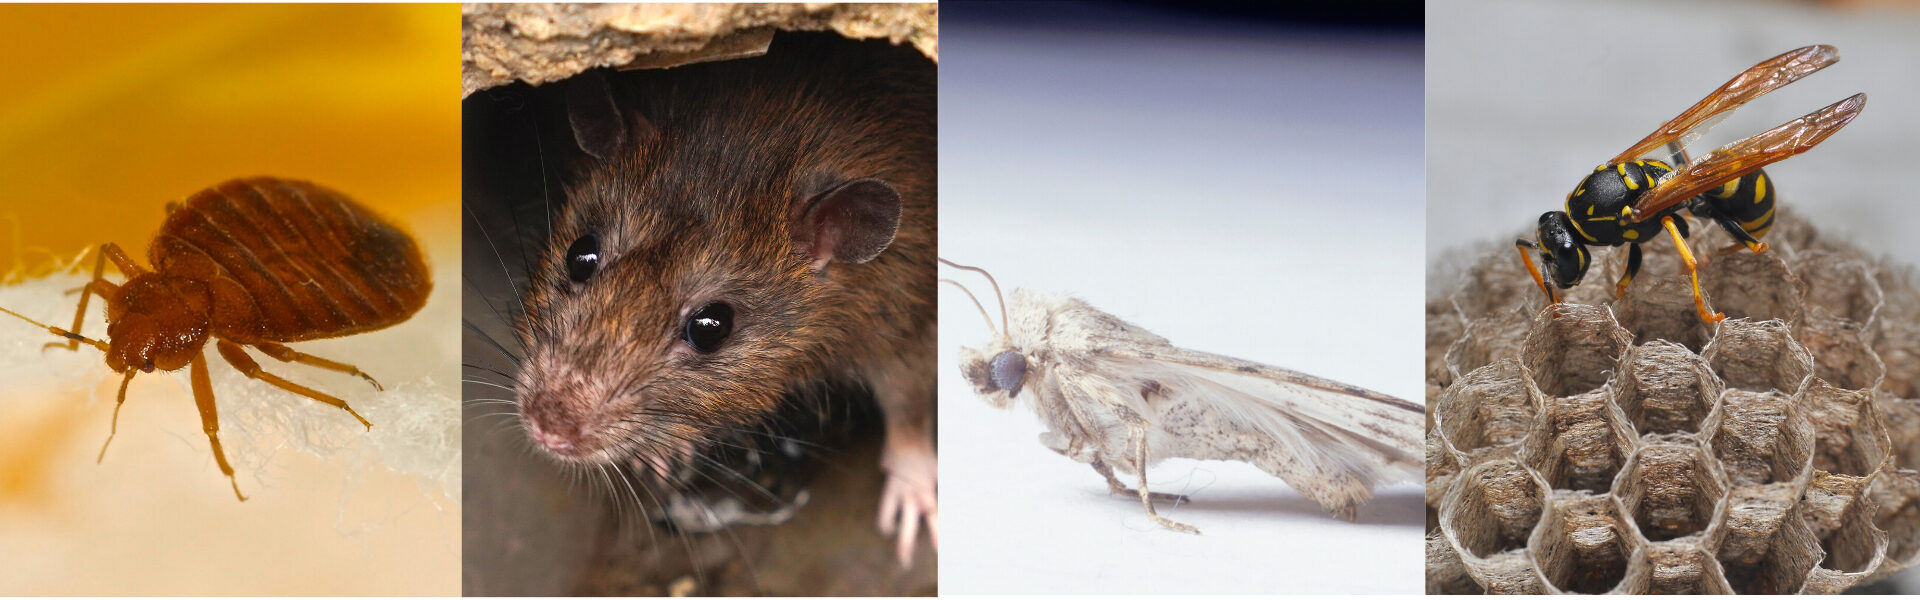 Pest Control in South Wales